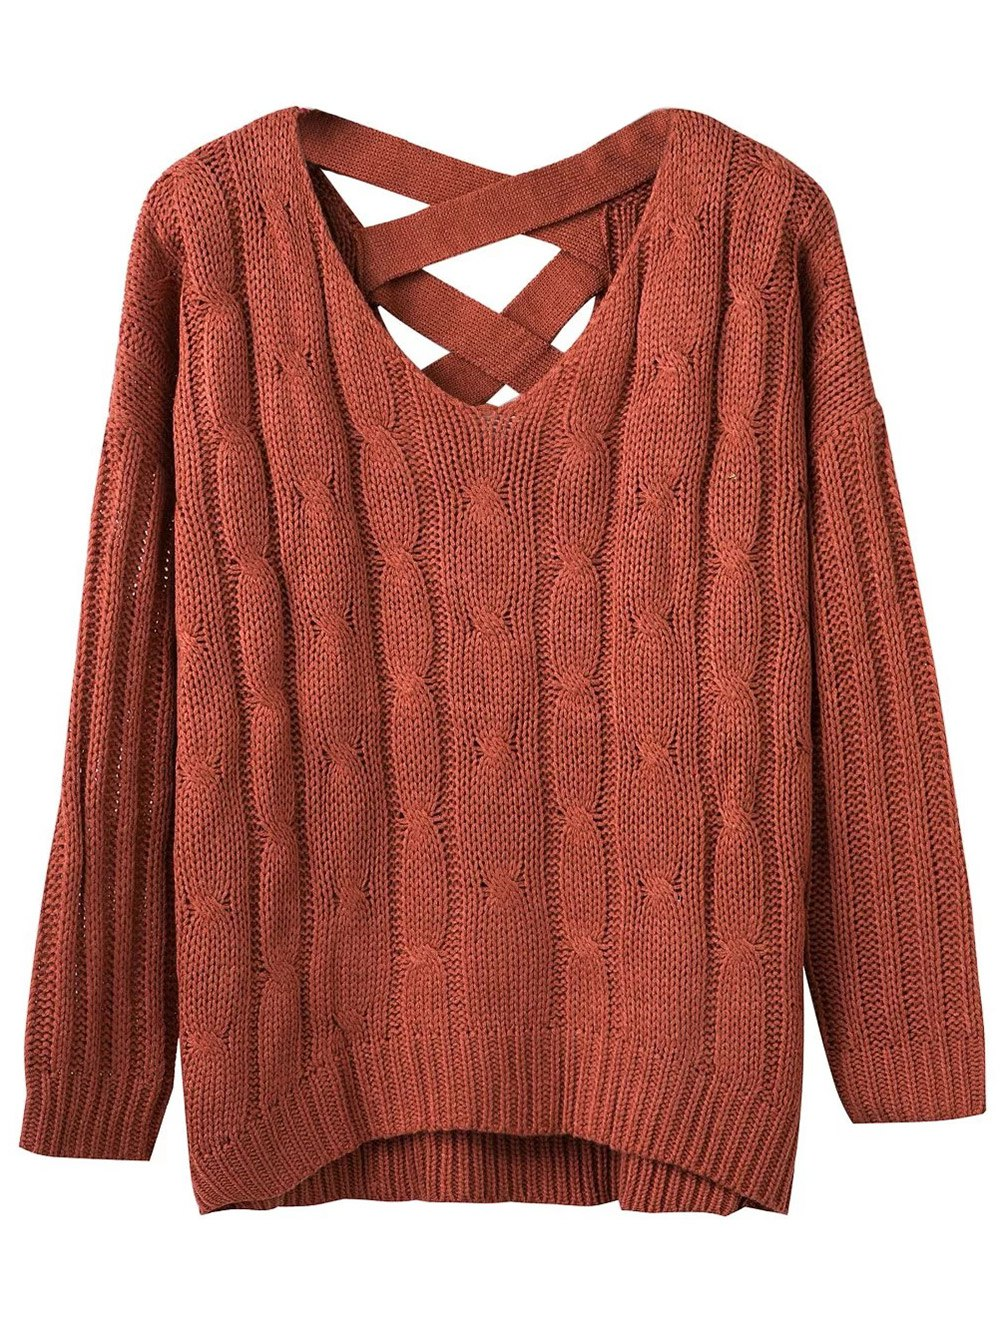 Relaxed Fit Cable Knit Sweater